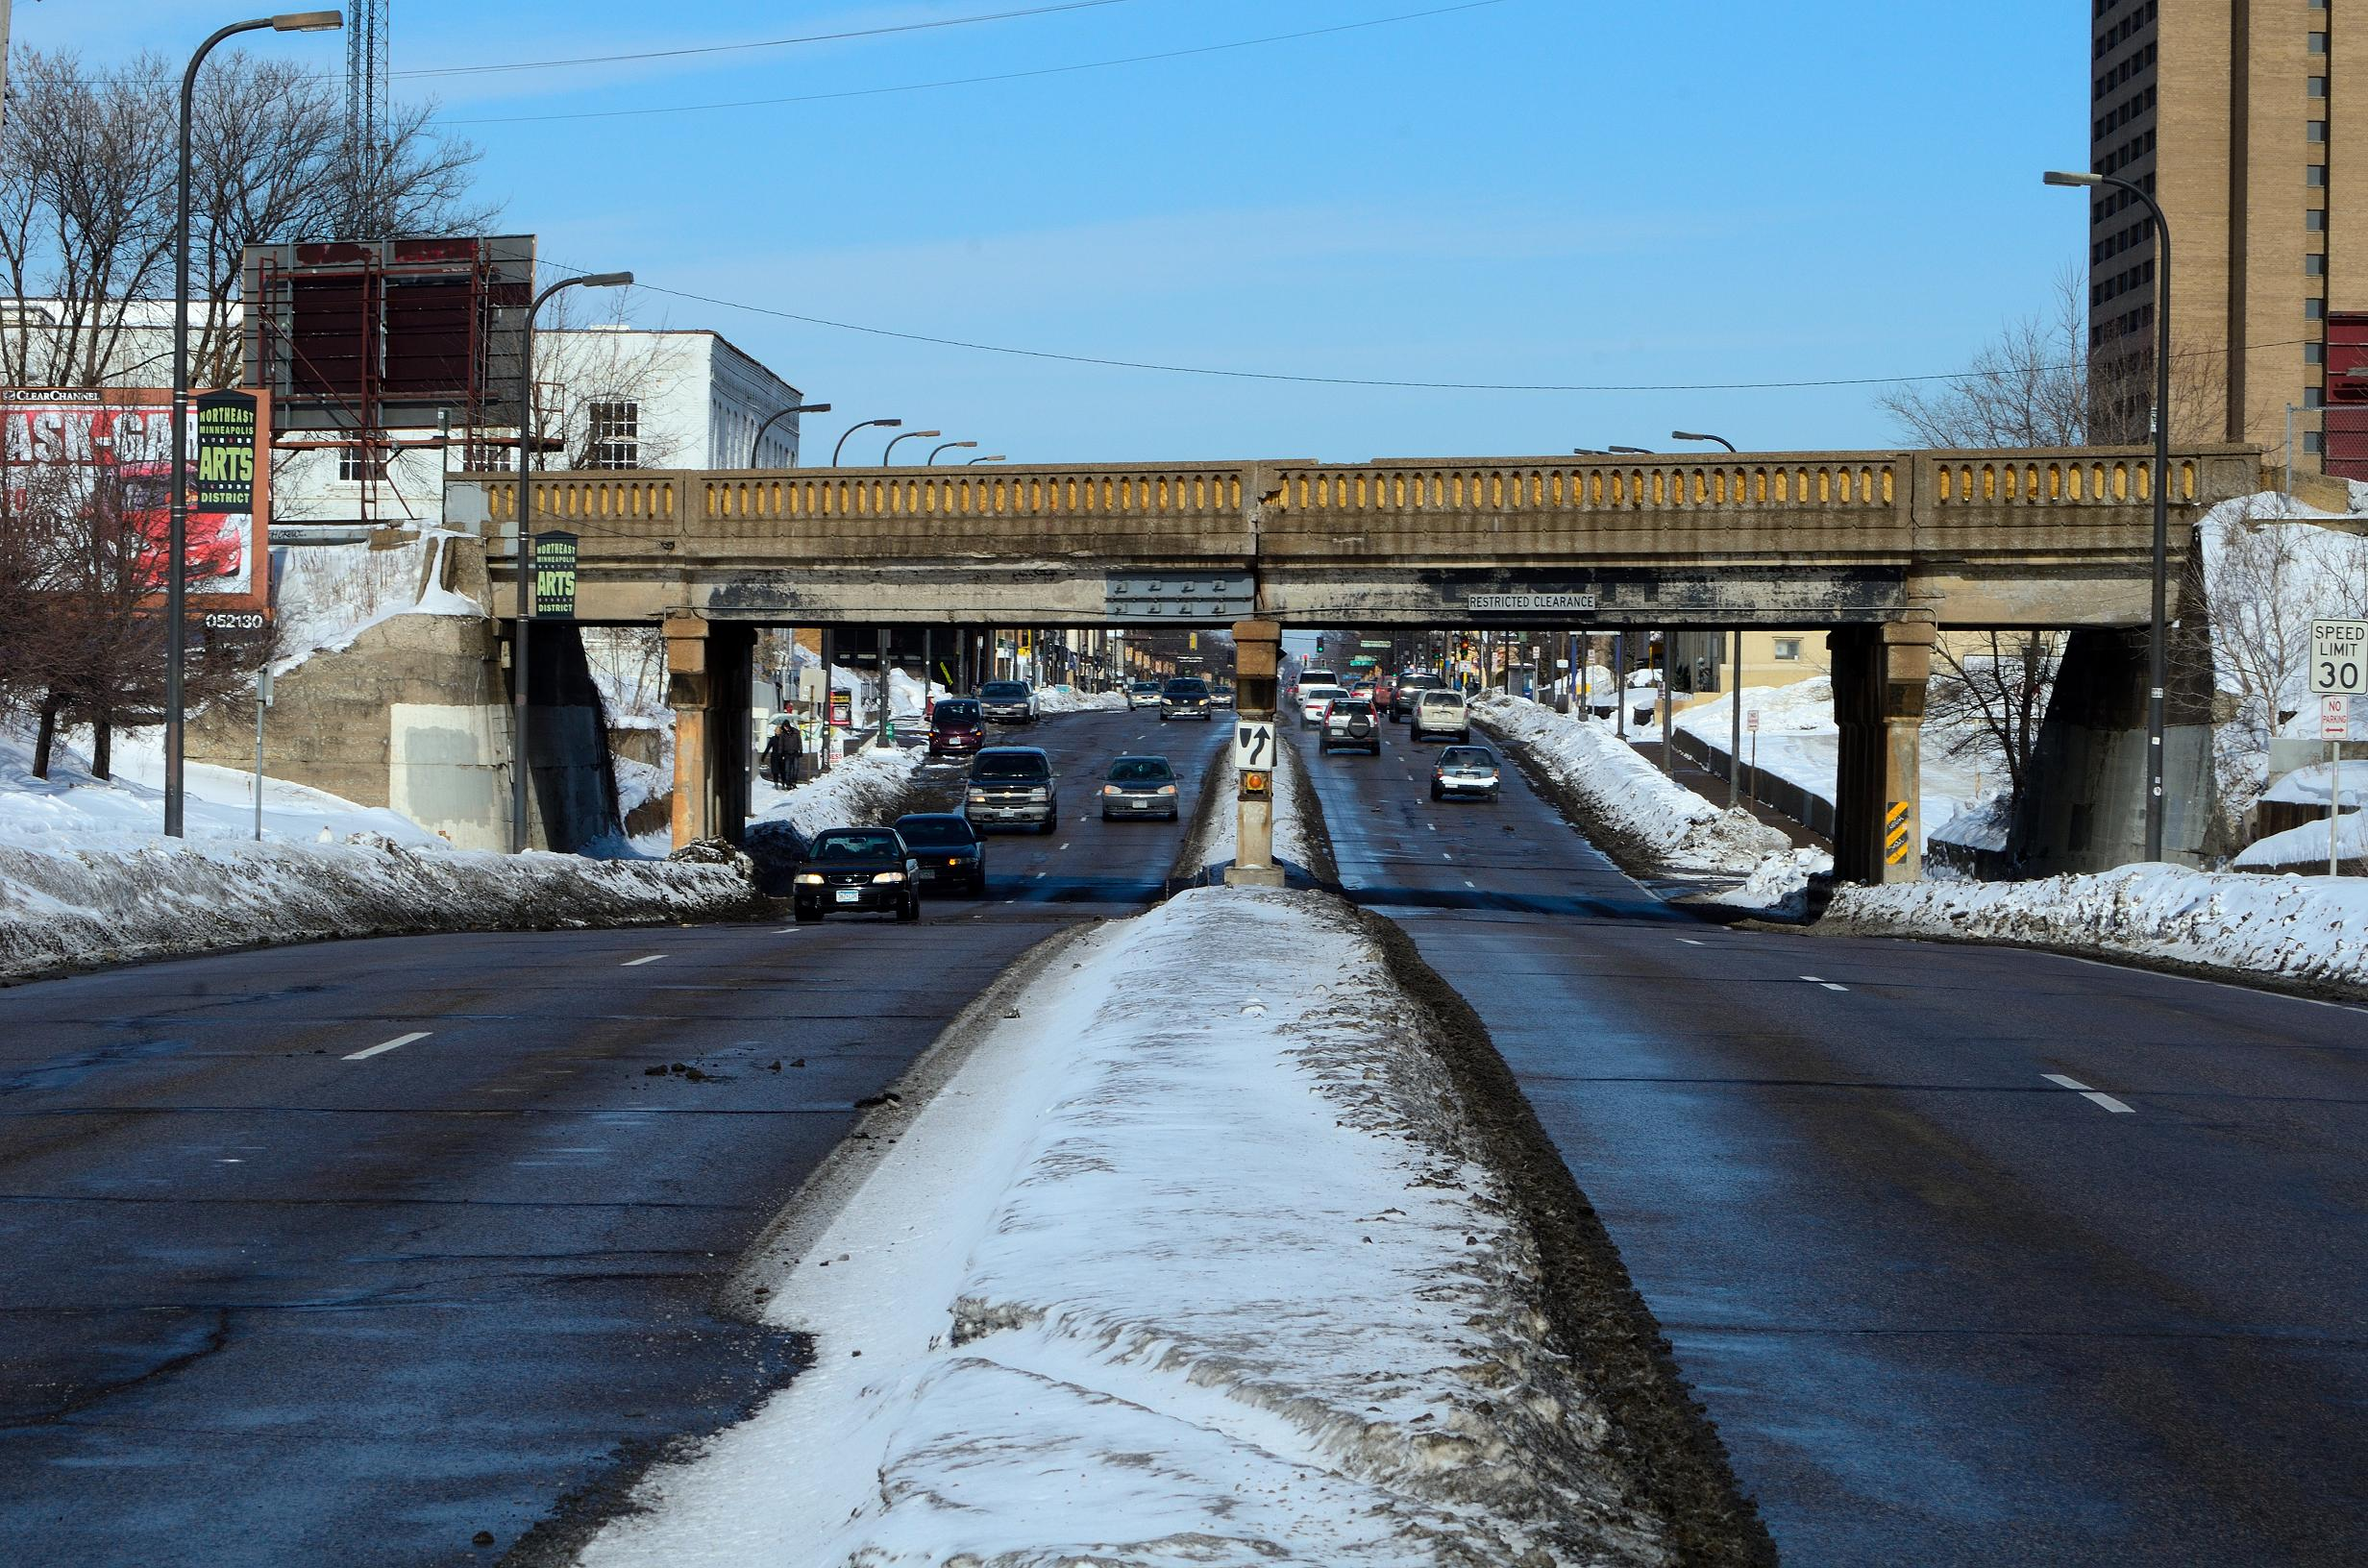 Old bridge during daytime, winter